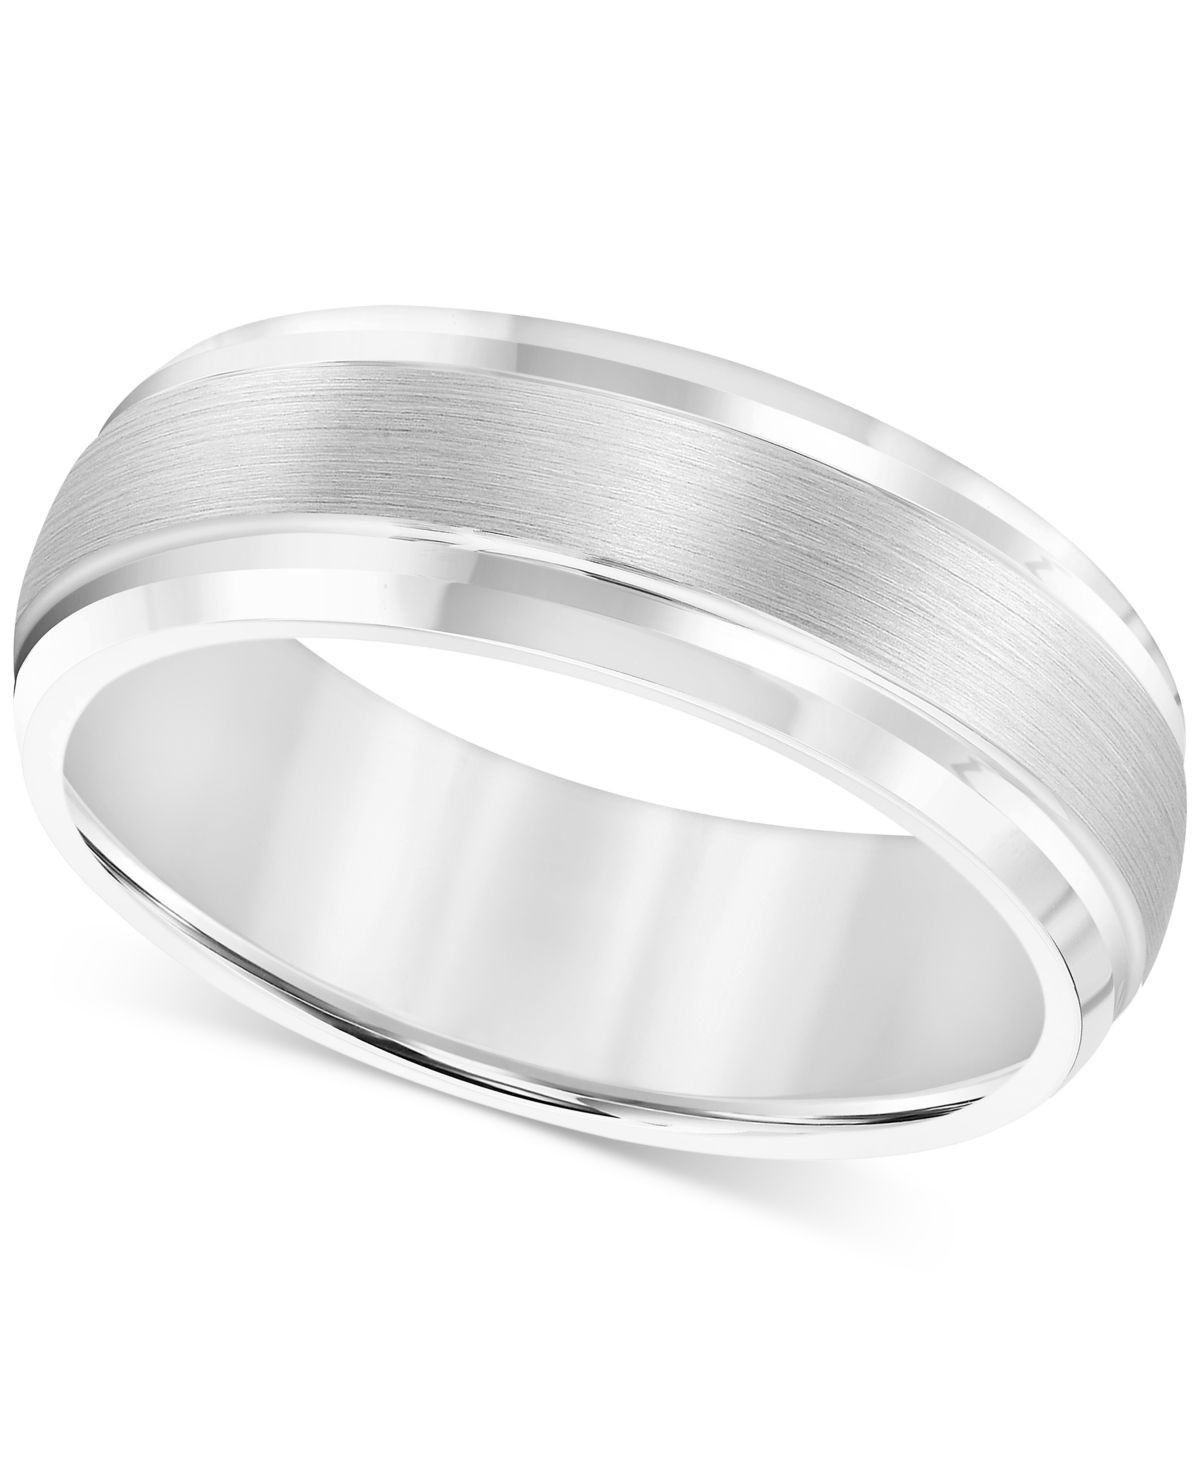 Triton Men S Cobalt Ring 8mm Wedding Band Reviews Rings Jewelry Watches Macy S In 2020 8mm Wedding Band Silver Wedding Bands Mens Wedding Bands